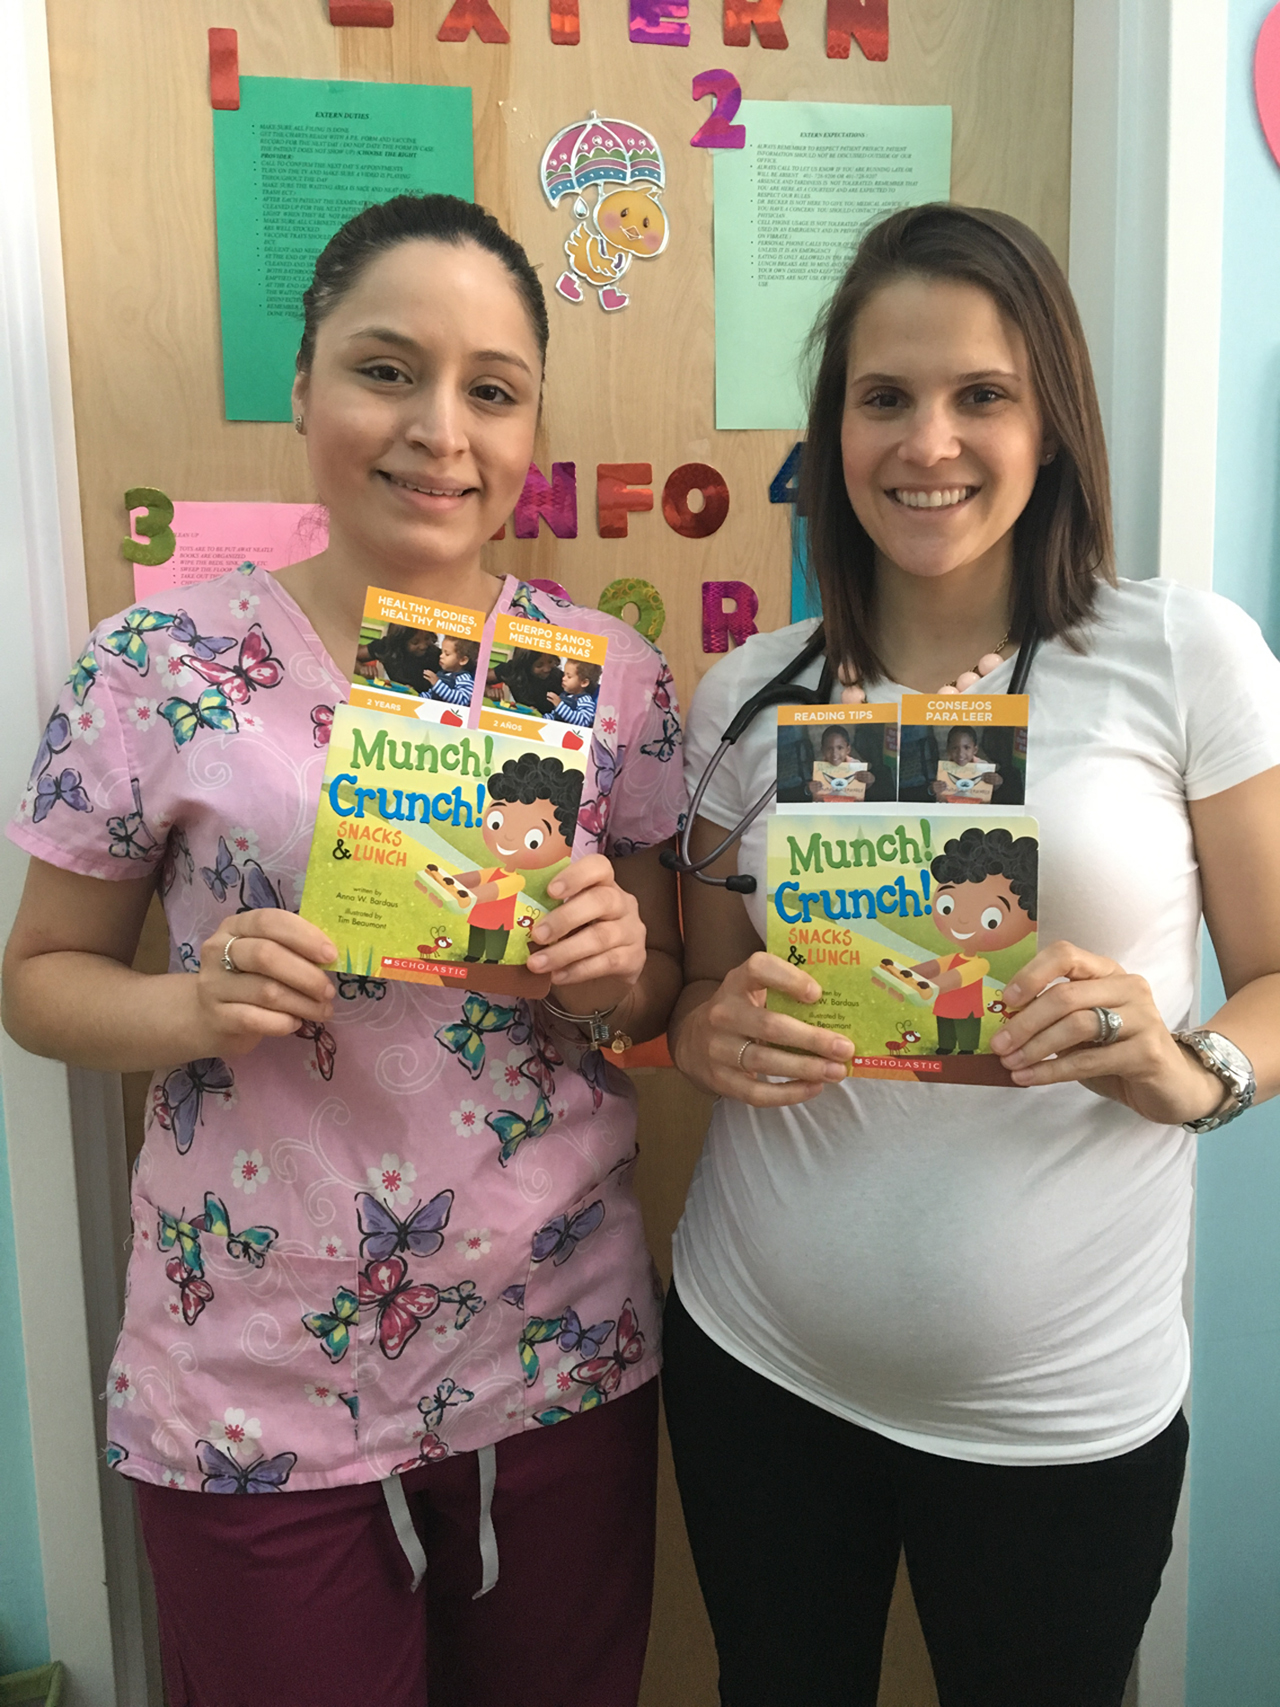 STAFF MEMBERS IN Dr. Tanya Becker's Pawtucket pediatric practice, from left, Maricarmen Ramos and Stephanie Carper, pose with the Healthy Bodies, Healthy Minds partnership's books that will be distributed to patients. /COURTESY REACH OUT AND READ RI